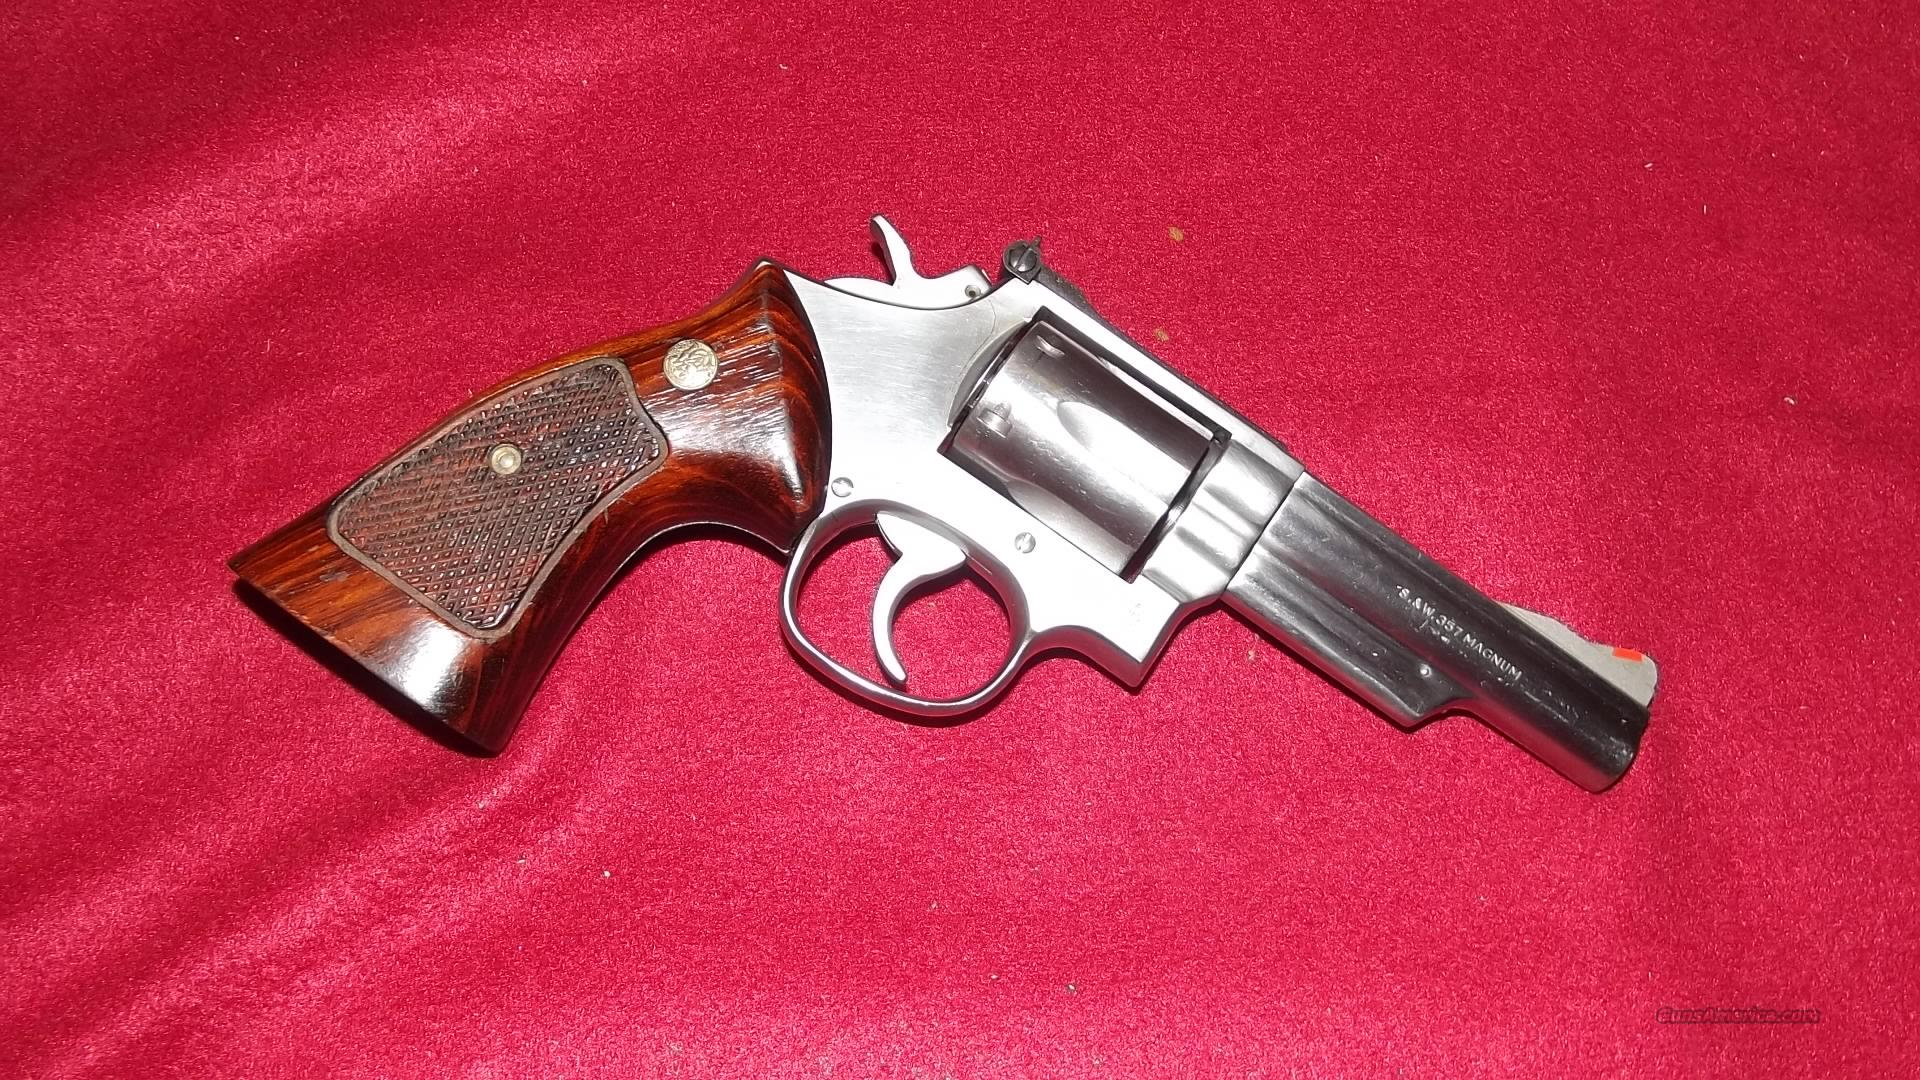 Smith and Wesson Mod 66-2   Guns > Pistols > Smith & Wesson Revolvers > Full Frame Revolver